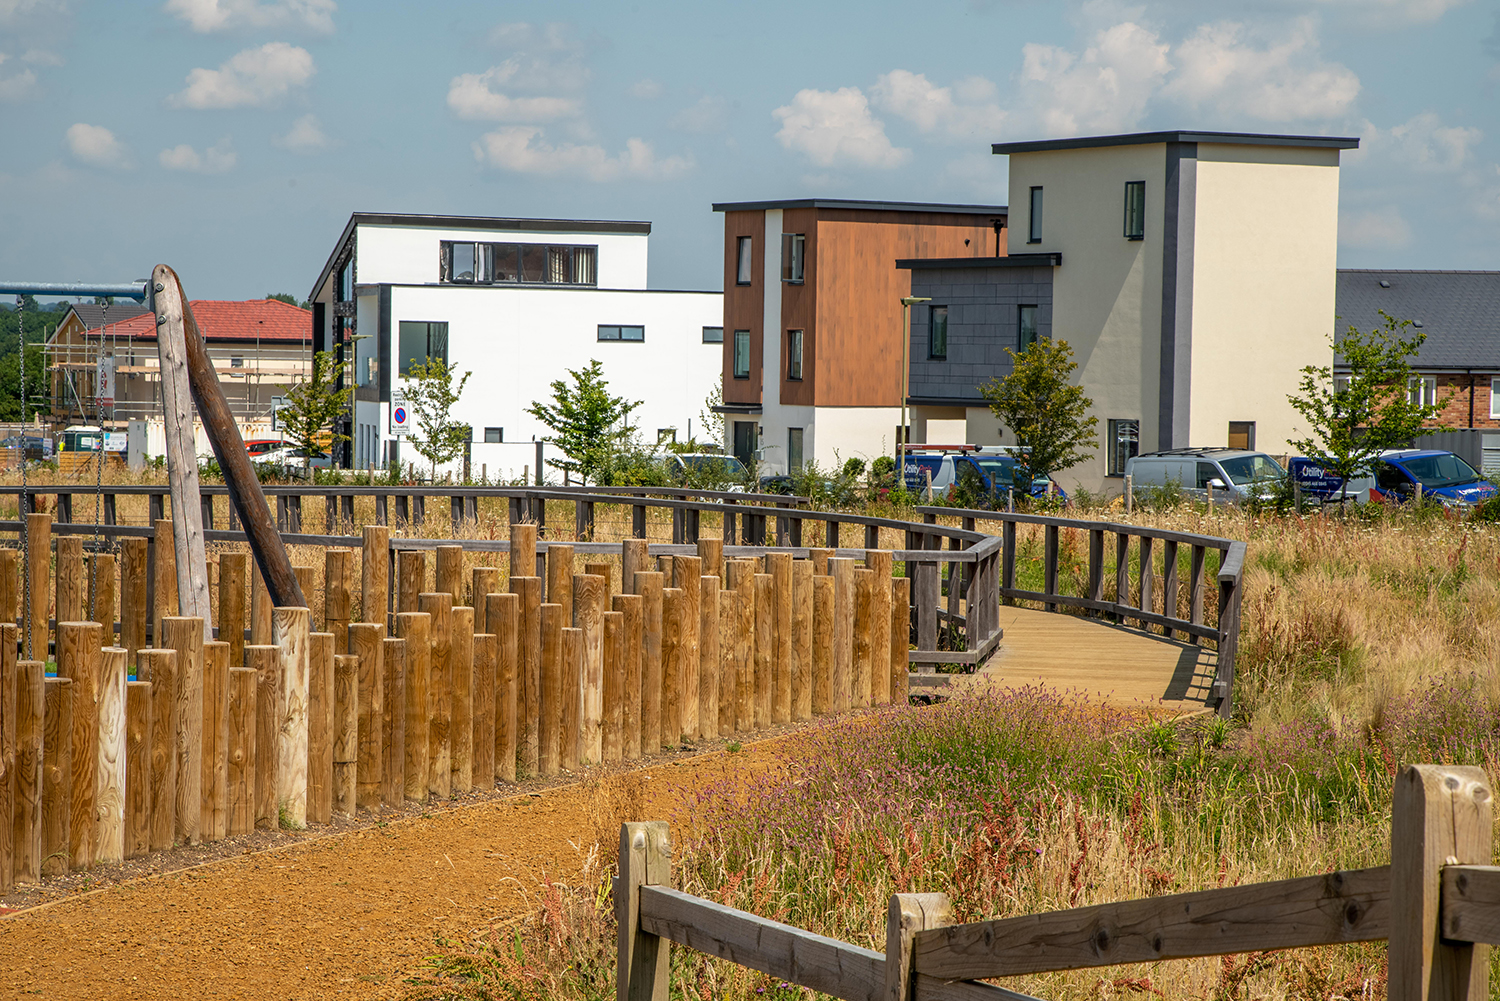 Self-build homes at Graven Hill